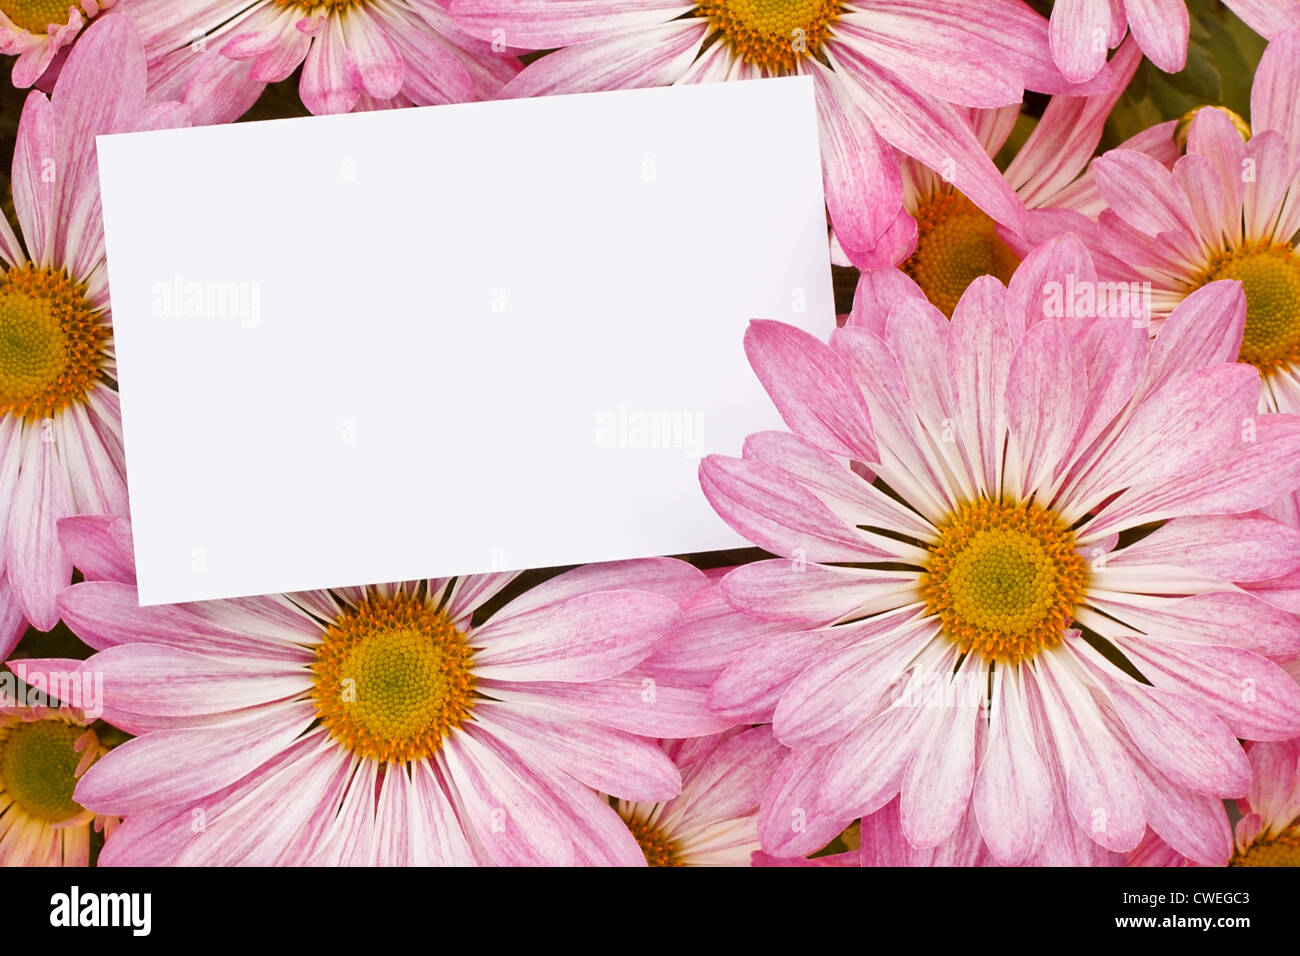 Bouquet blank tag card stock photos bouquet blank tag card stock pink chrysanthemum floral bouquet background with blank greeting tag to insert your marketing message or florists izmirmasajfo